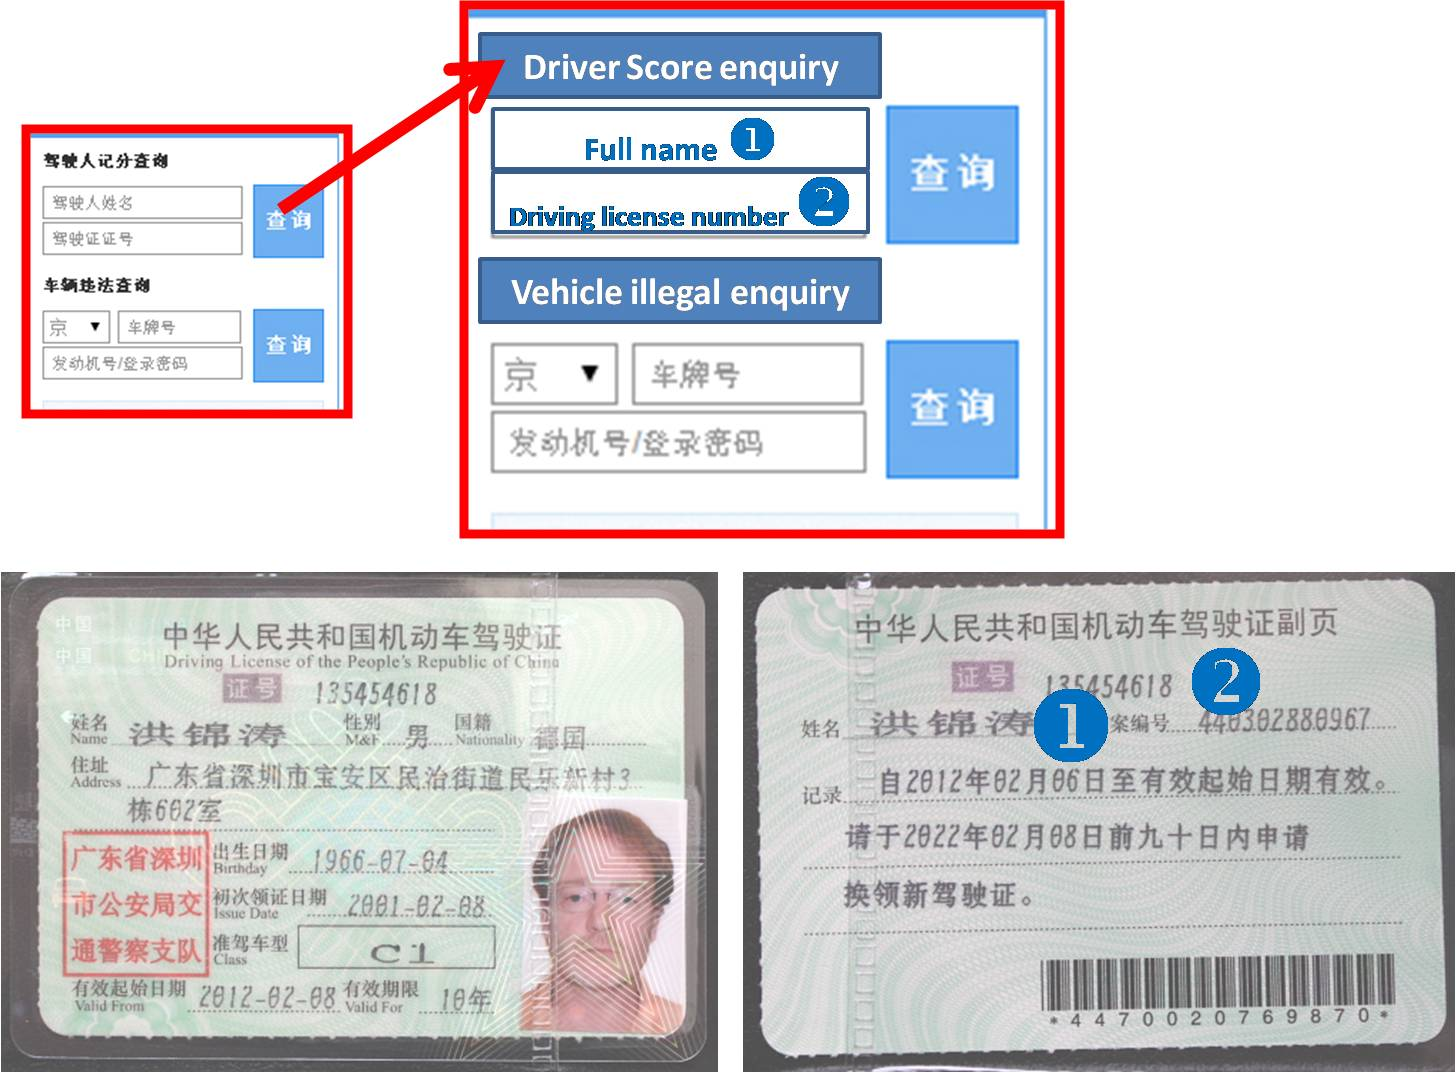 Driving in beijing check if you have records scout real for Driver license motor vehicle record